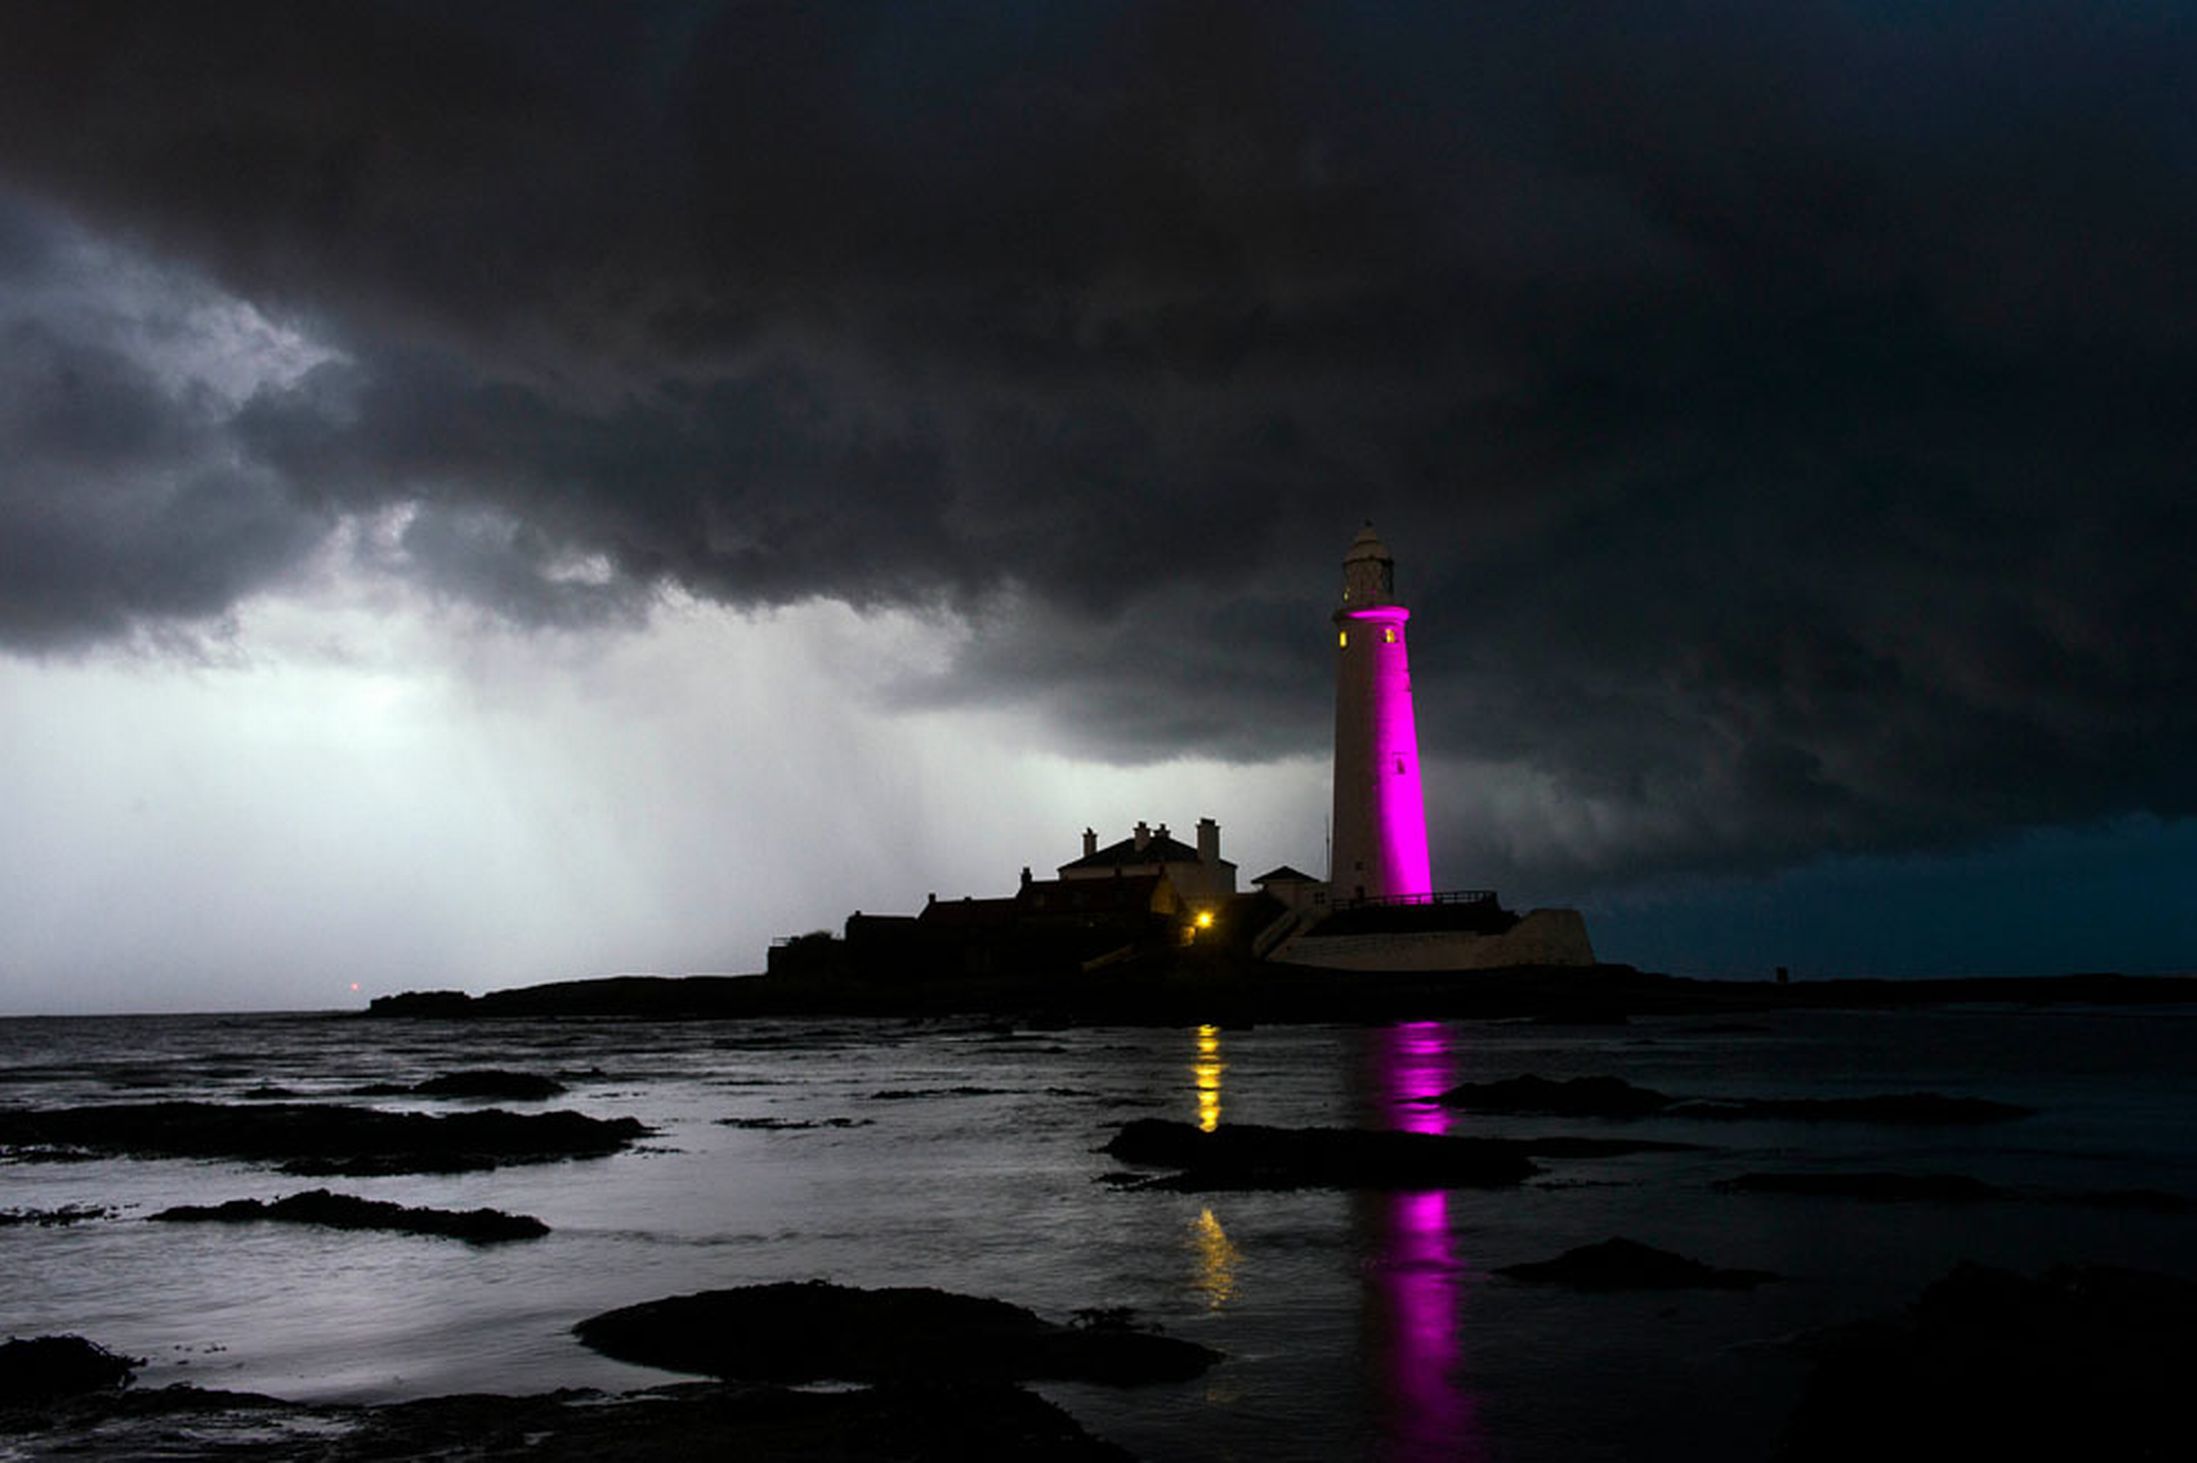 Dark-clouds-are-seen-behind-St-Marys-Lighthouse-Whitley-Bay-North-Tyneside-25th-October-2641149